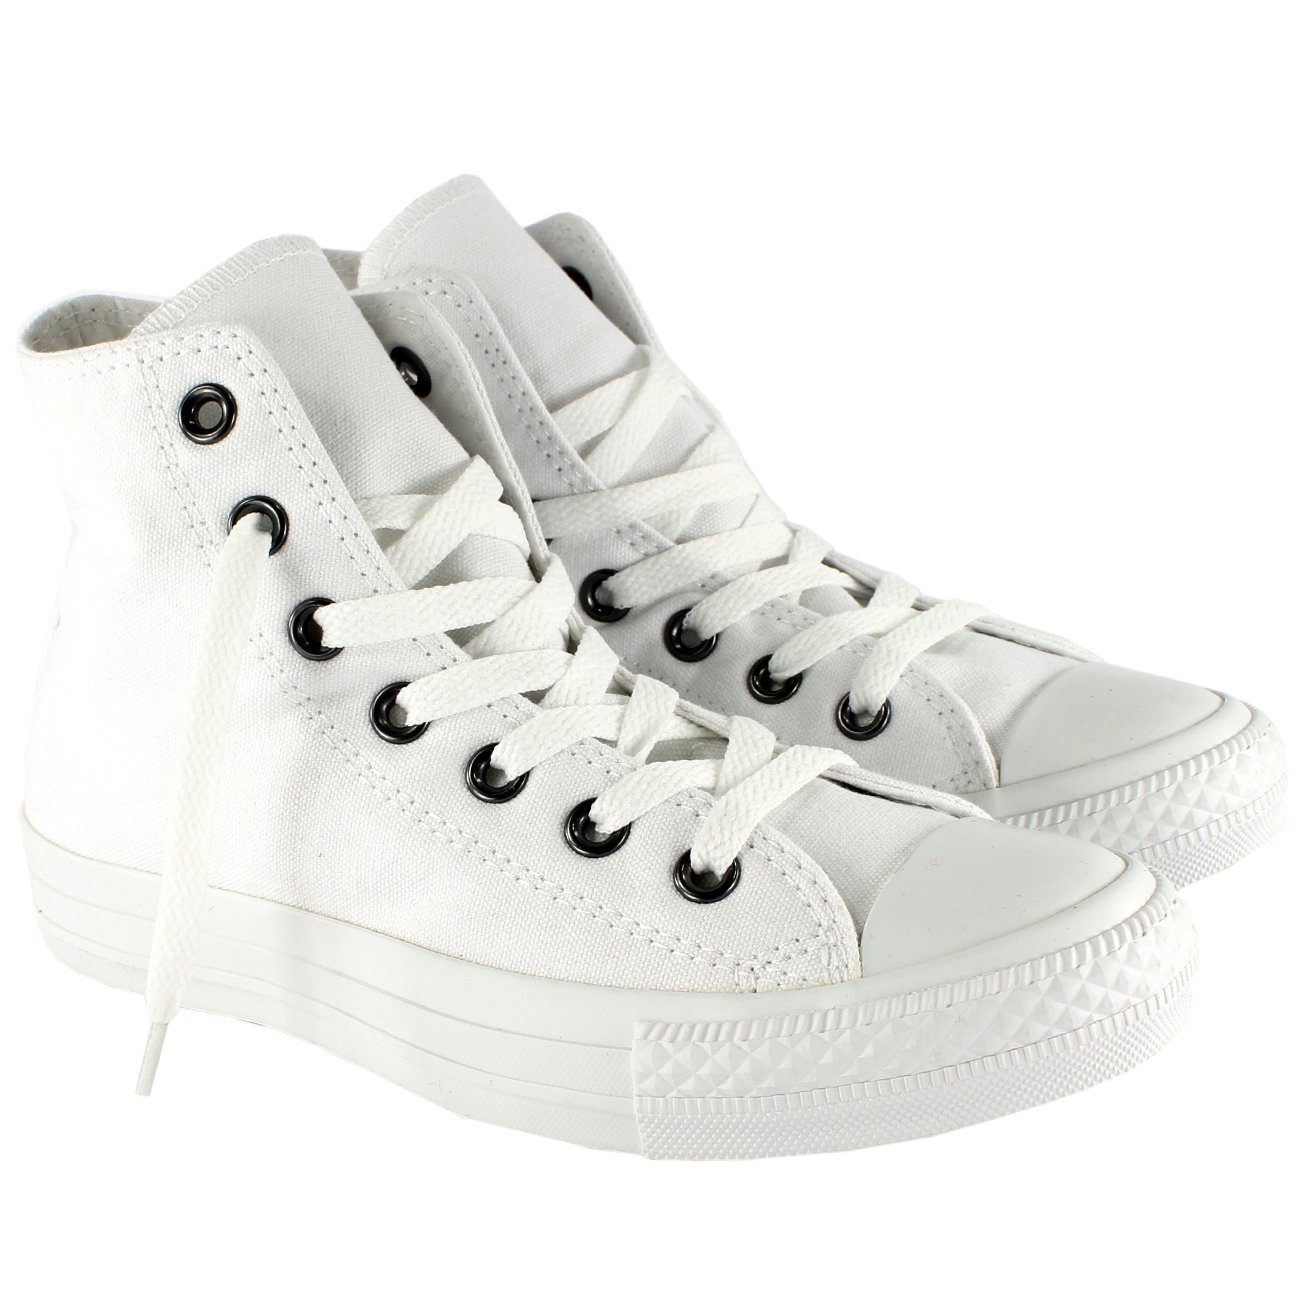 Converse White Chuck Taylor Etoiles Low 17988 Top Sneakers Sneaker Mode Taylor White Mono f949929 - shopssong.space